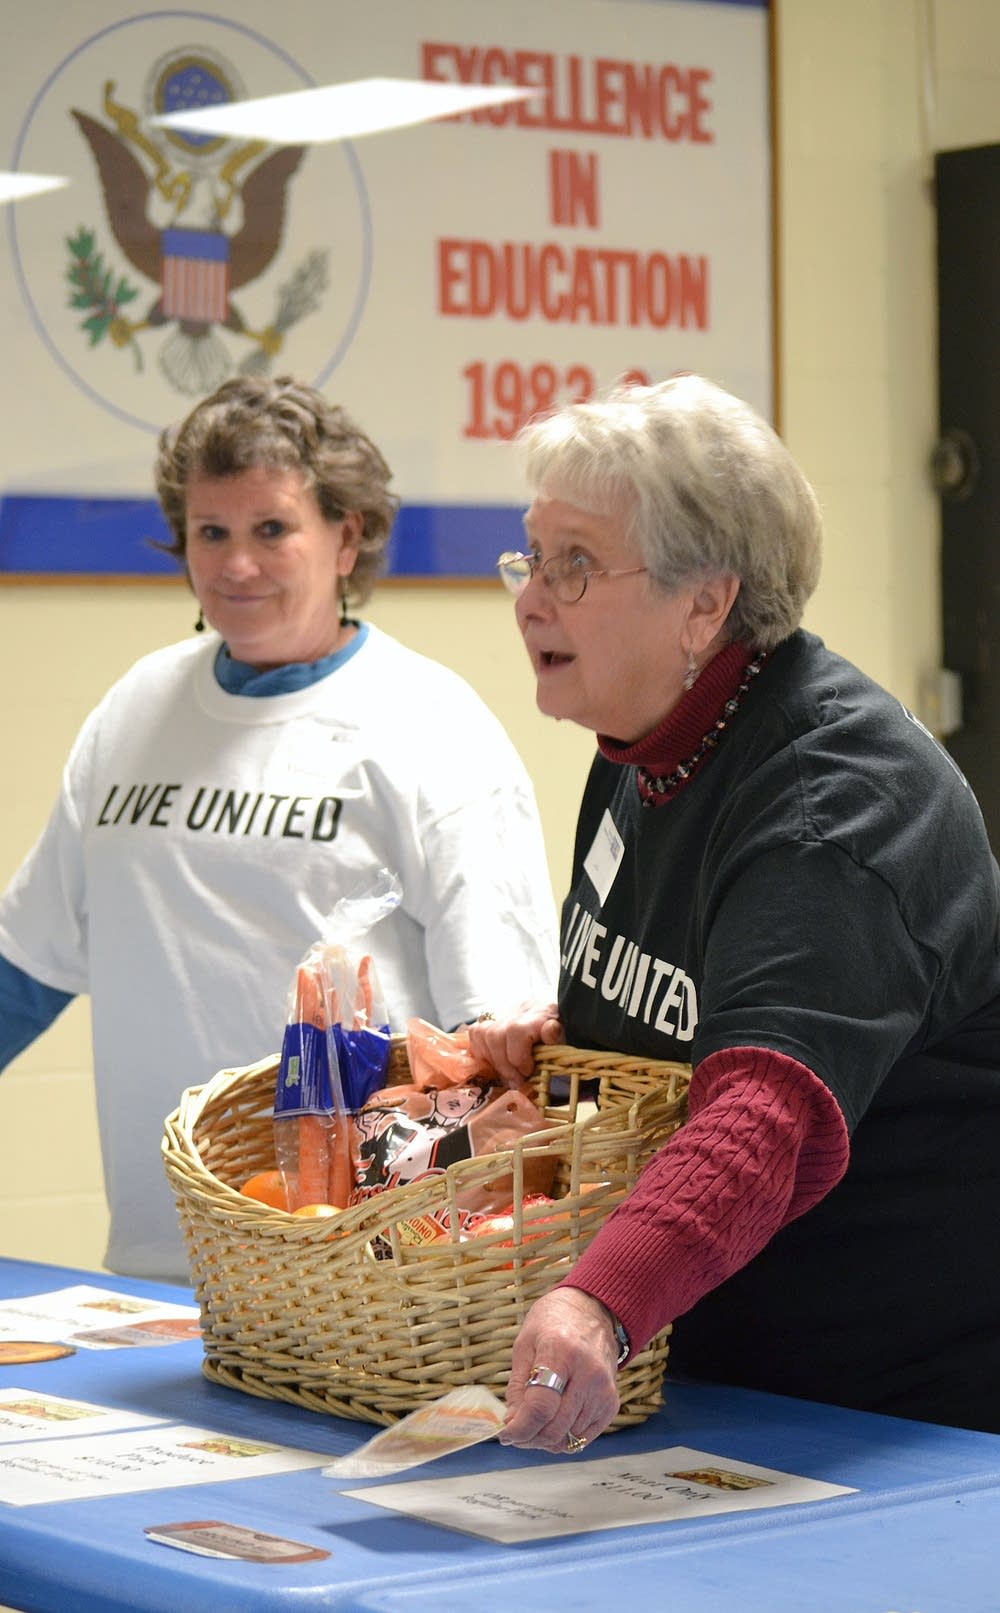 Pat Walters (left) and Bonnie Warren